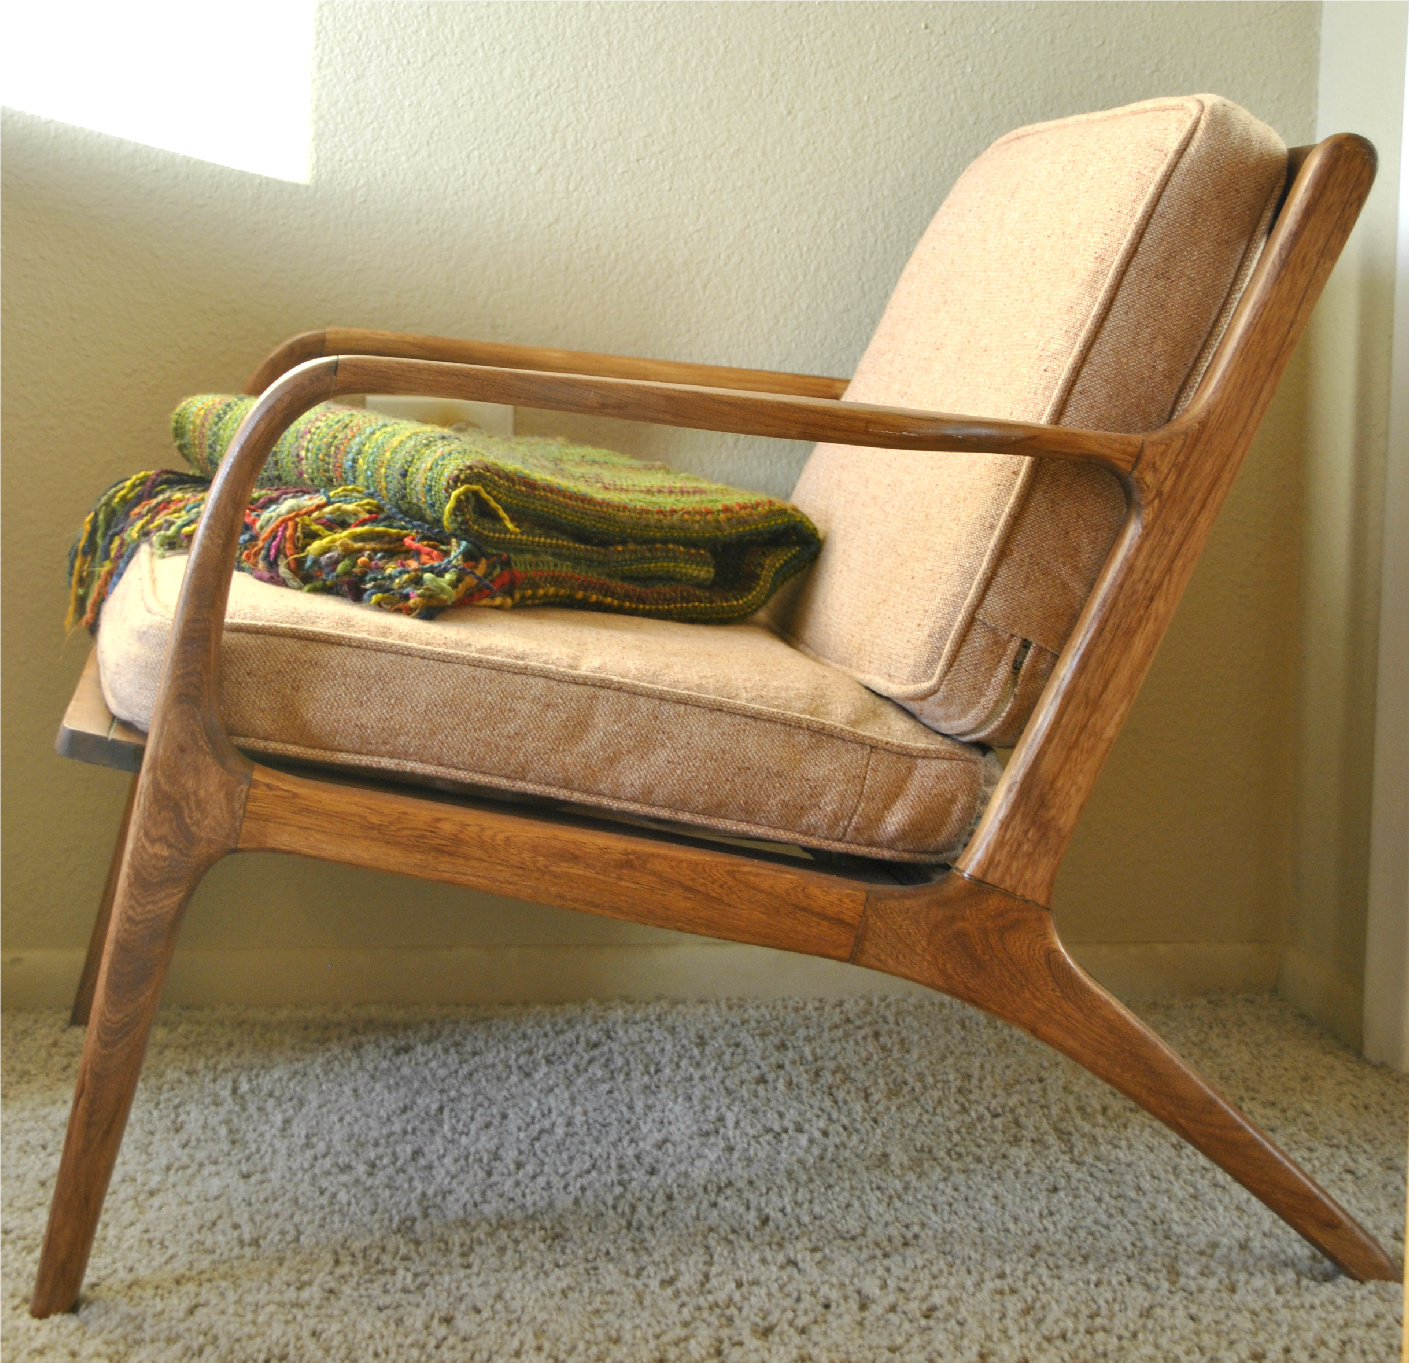 Danish mid century teak lounge chair trevi vintage design - Modern lounge chair design ...